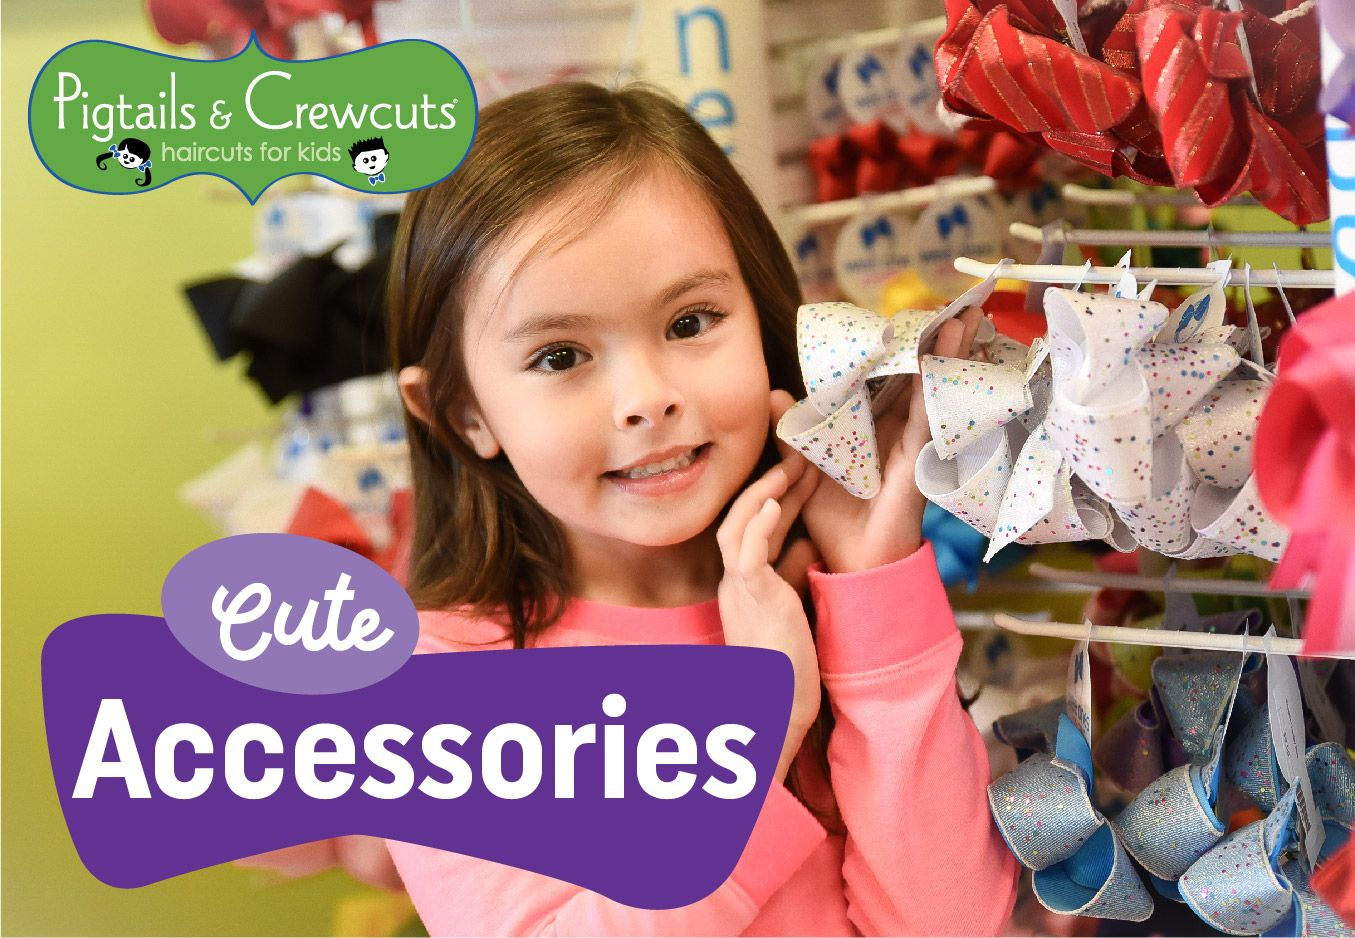 Pigtails u Crewcuts has cute accessories for your kidsu hair  Who